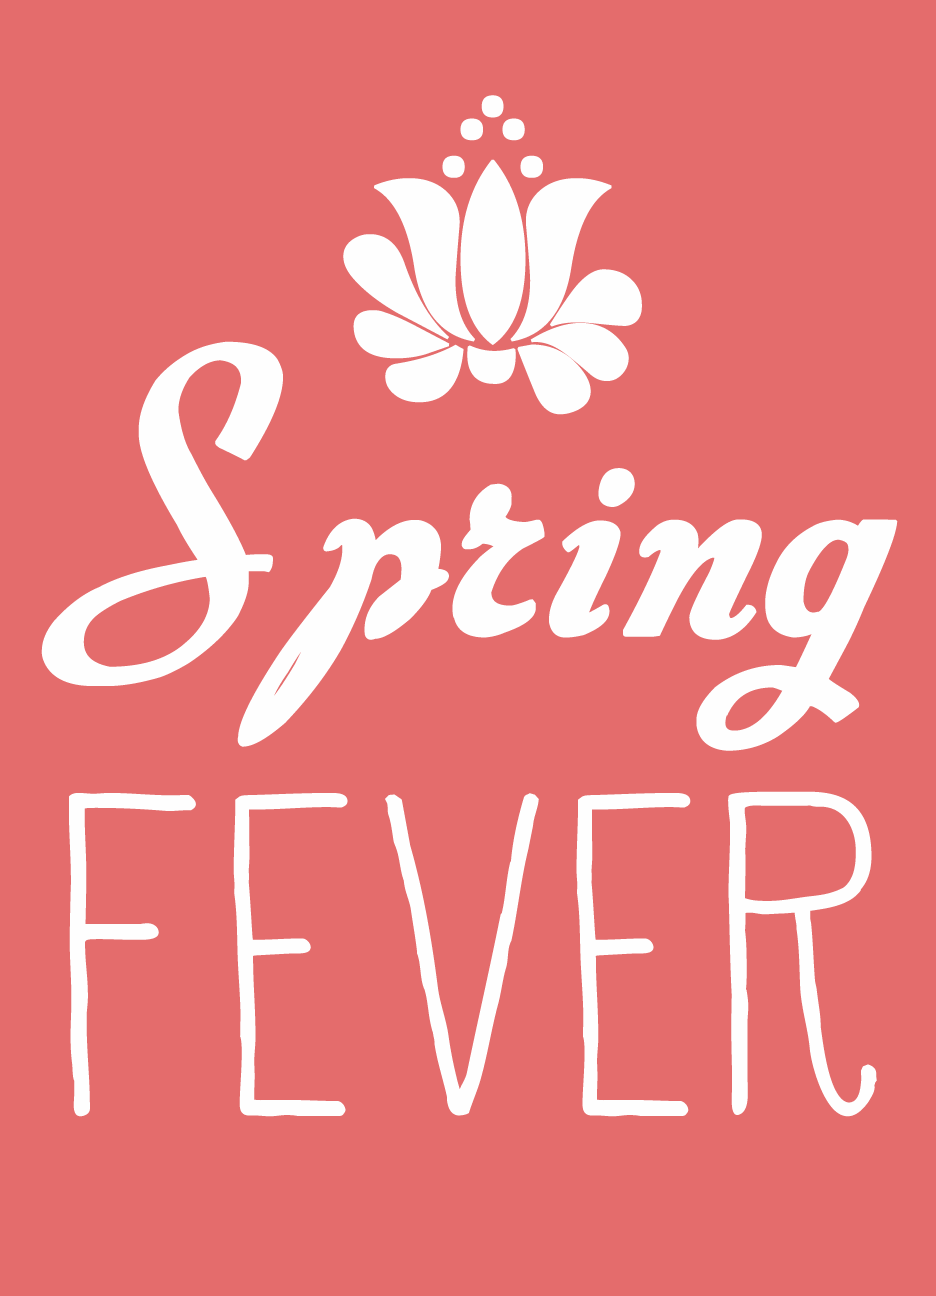 Spring Fever Quotes And Sayings. QuotesGram